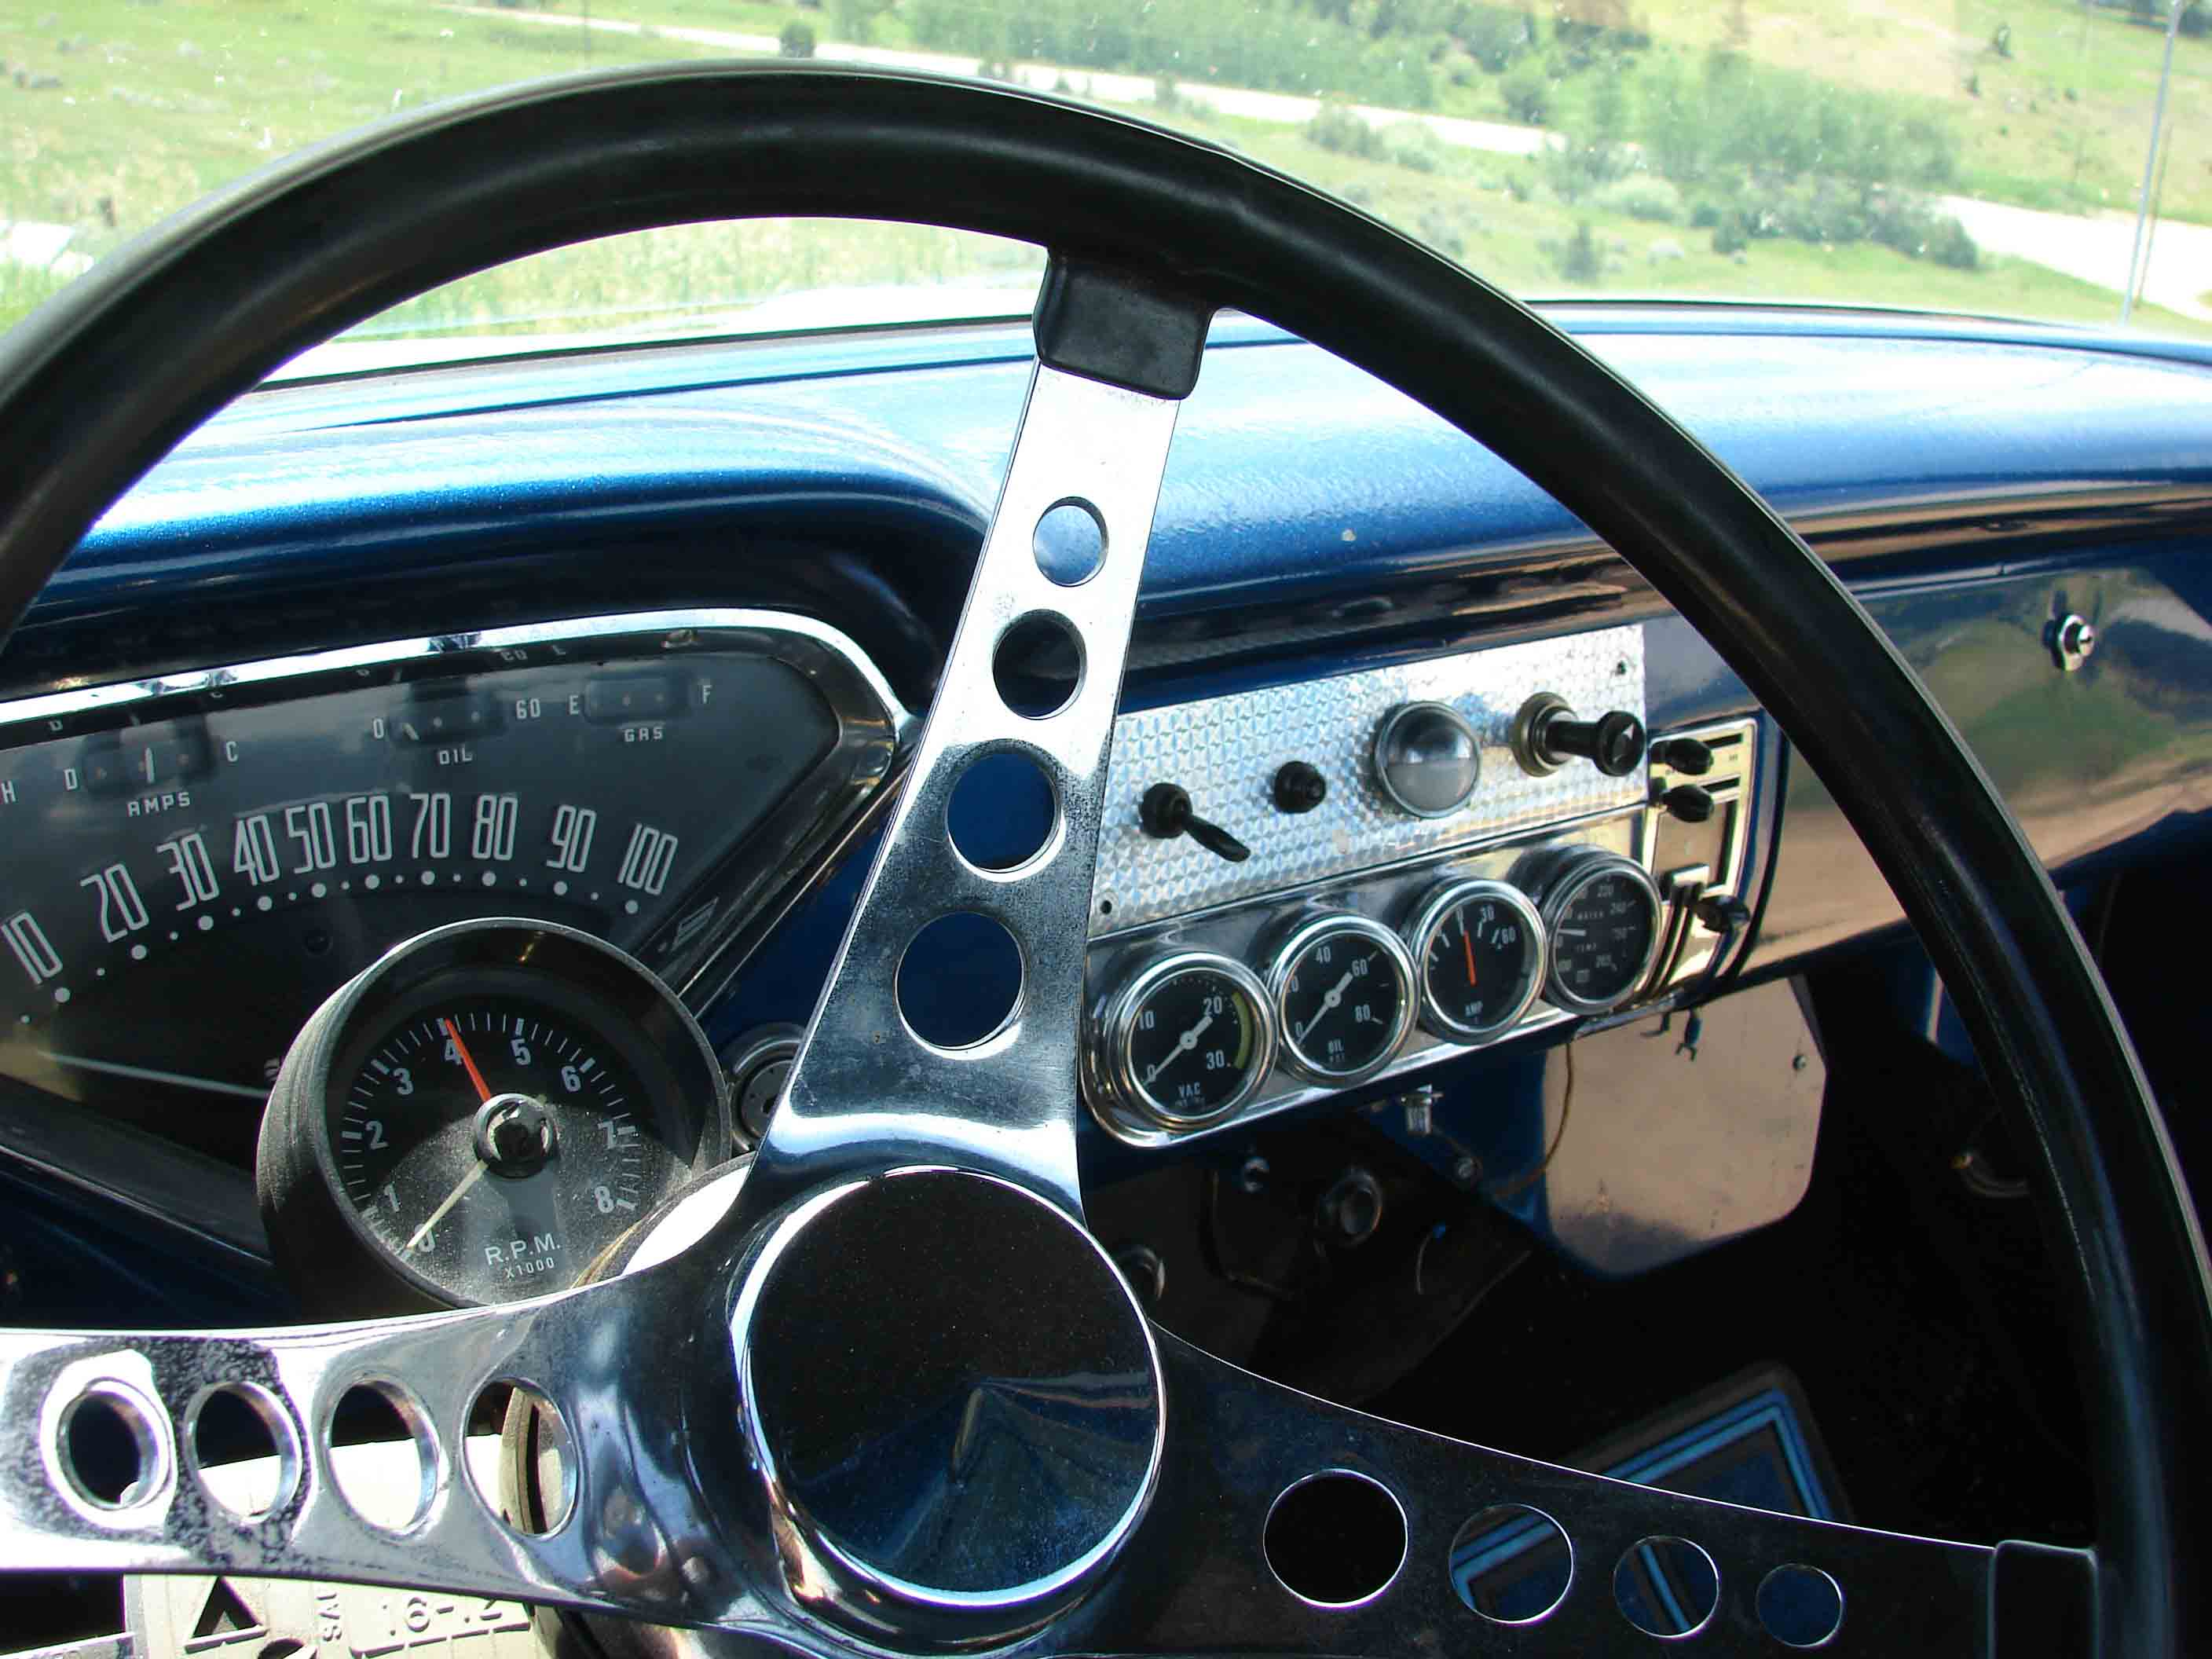 Old Trucks, Hot Rods & Gender Questions